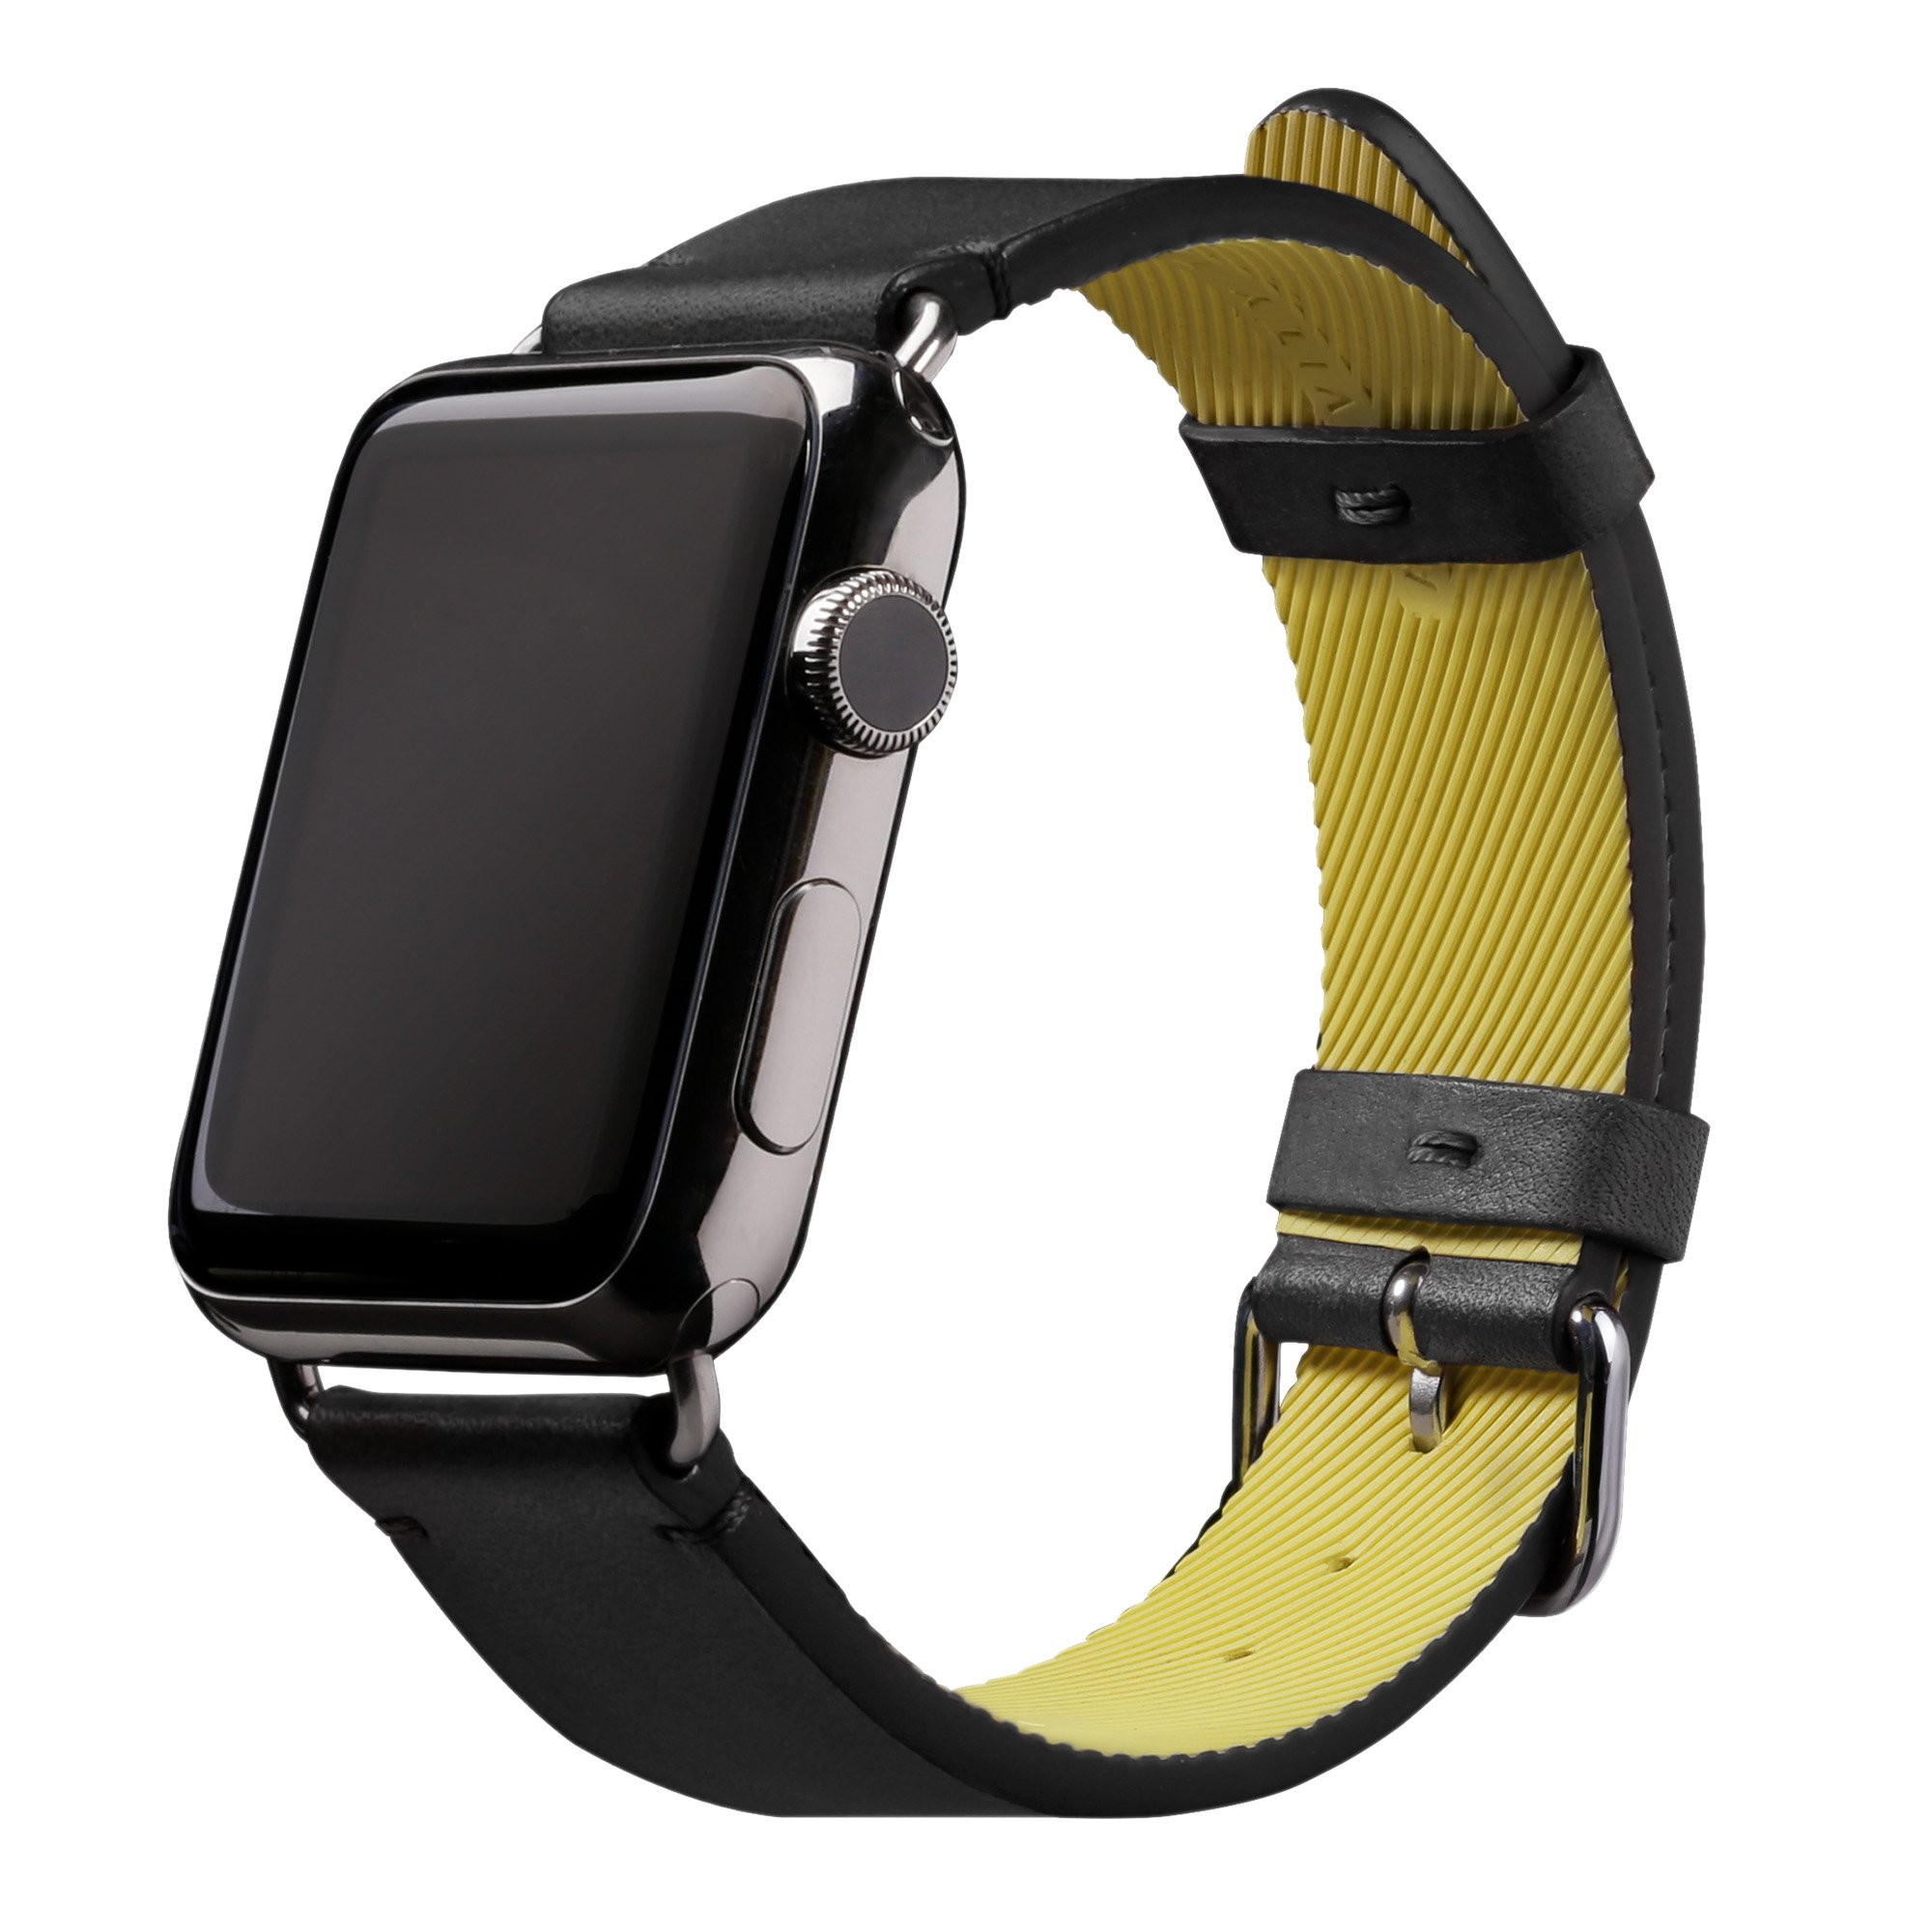 Native Union Active Strap Leather Edition - Genuine Leather Sports Strap with High-Performance Fluoroelastomer Backing for Apple Watch 42mm (Black) by Native Union